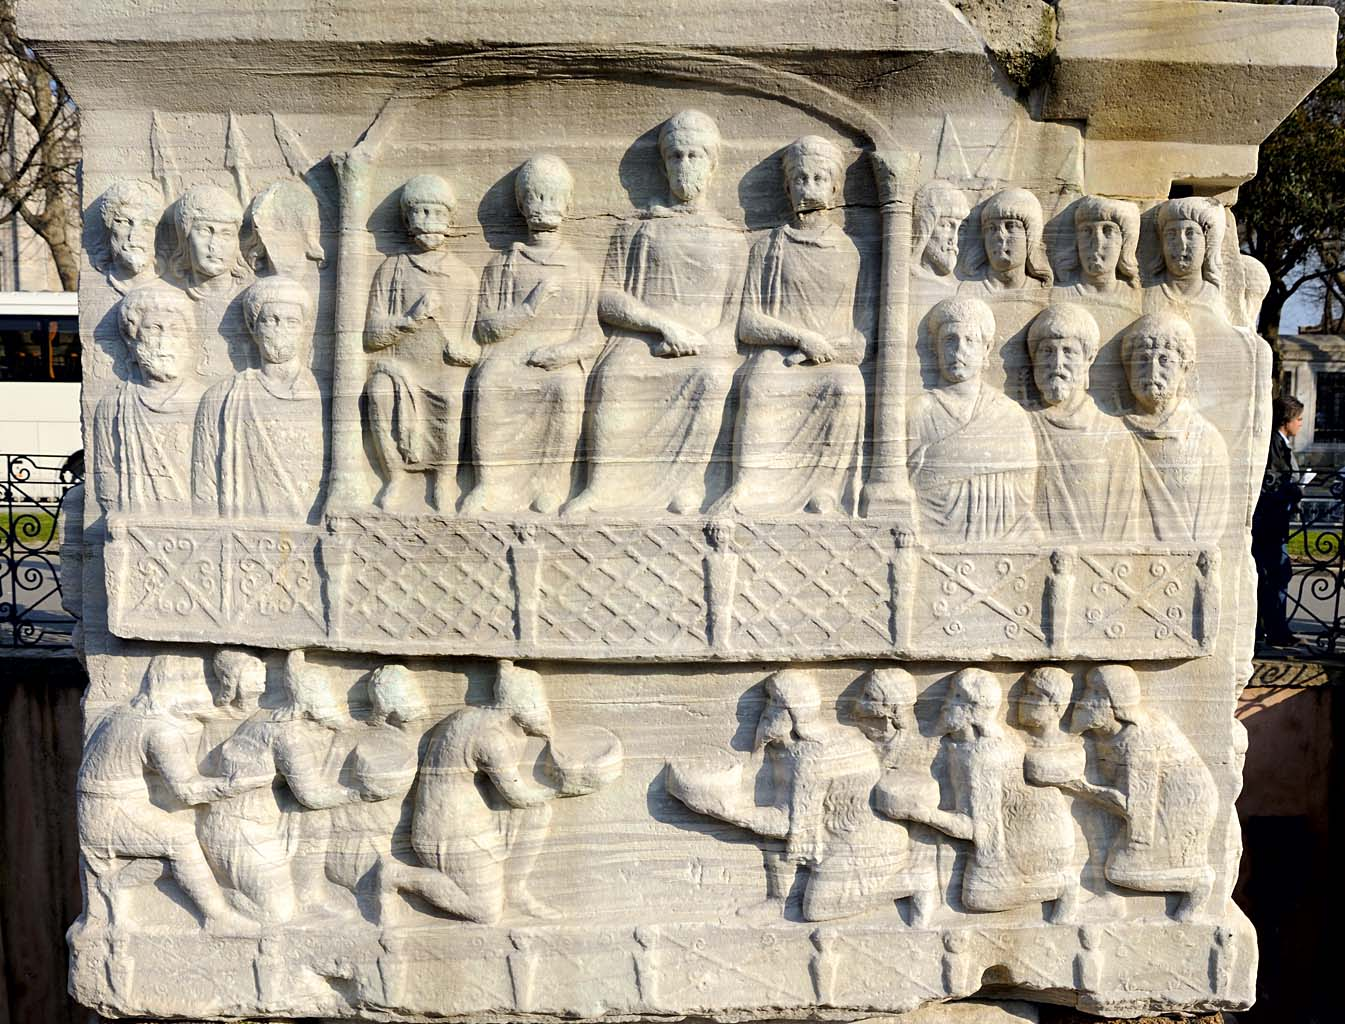 Bringing by barbarians the gift to emperor. Pedestal of the Obelisk of Theodosius. West side. Hippodrome of Constantinople. 390 CE. Istanbul